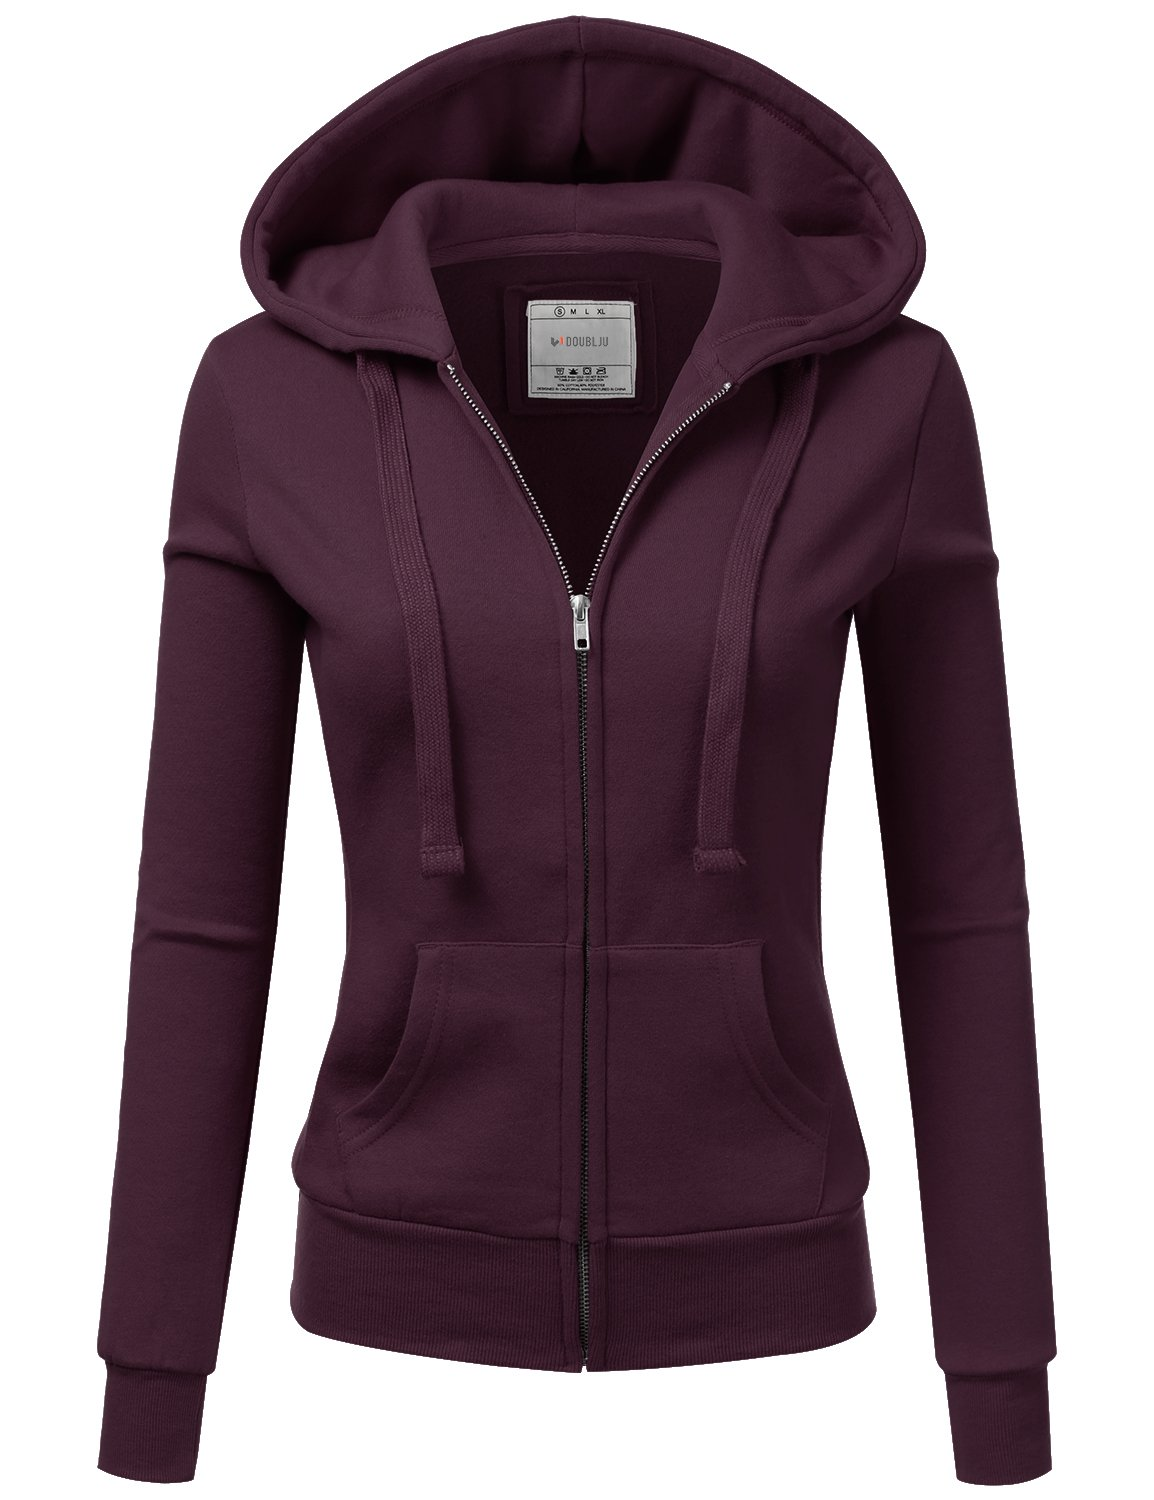 Doublju Lightweight Thin Zip-Up Hoodie Jacket for Women with Plus Size Plum Large